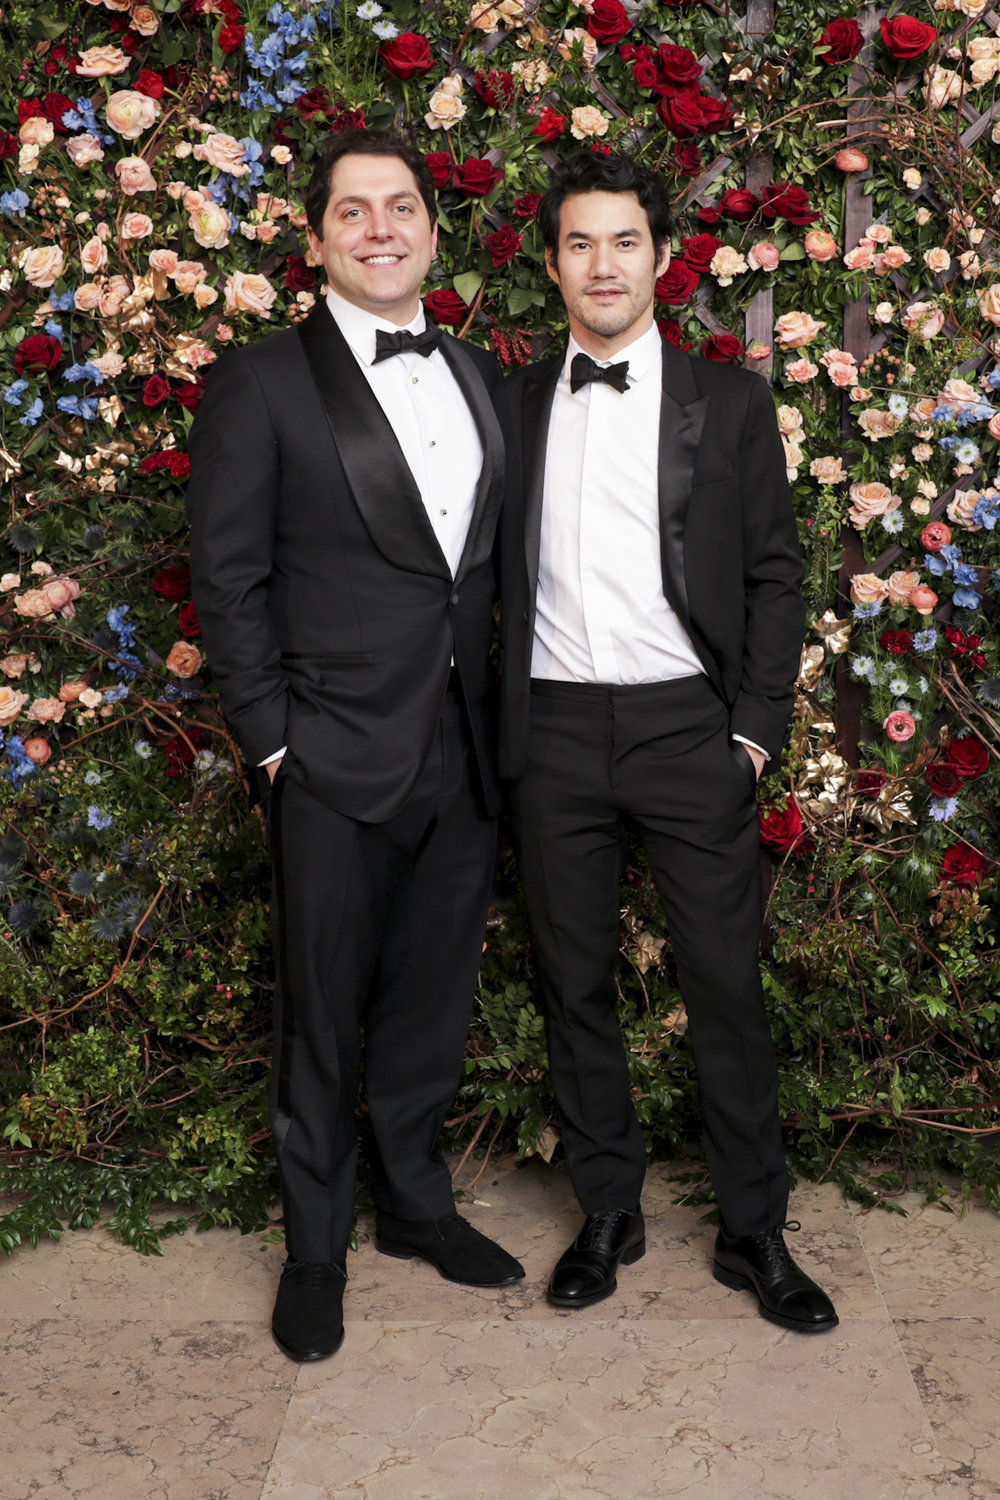 Seth Weissman and Joseph Altuzarra attend The Frick Collection's 20th Annual Young Fellows Ball at 1 East 70th Street on Thursday, March 21st, 2019. Photography, Courtesy of The Frick Collection.